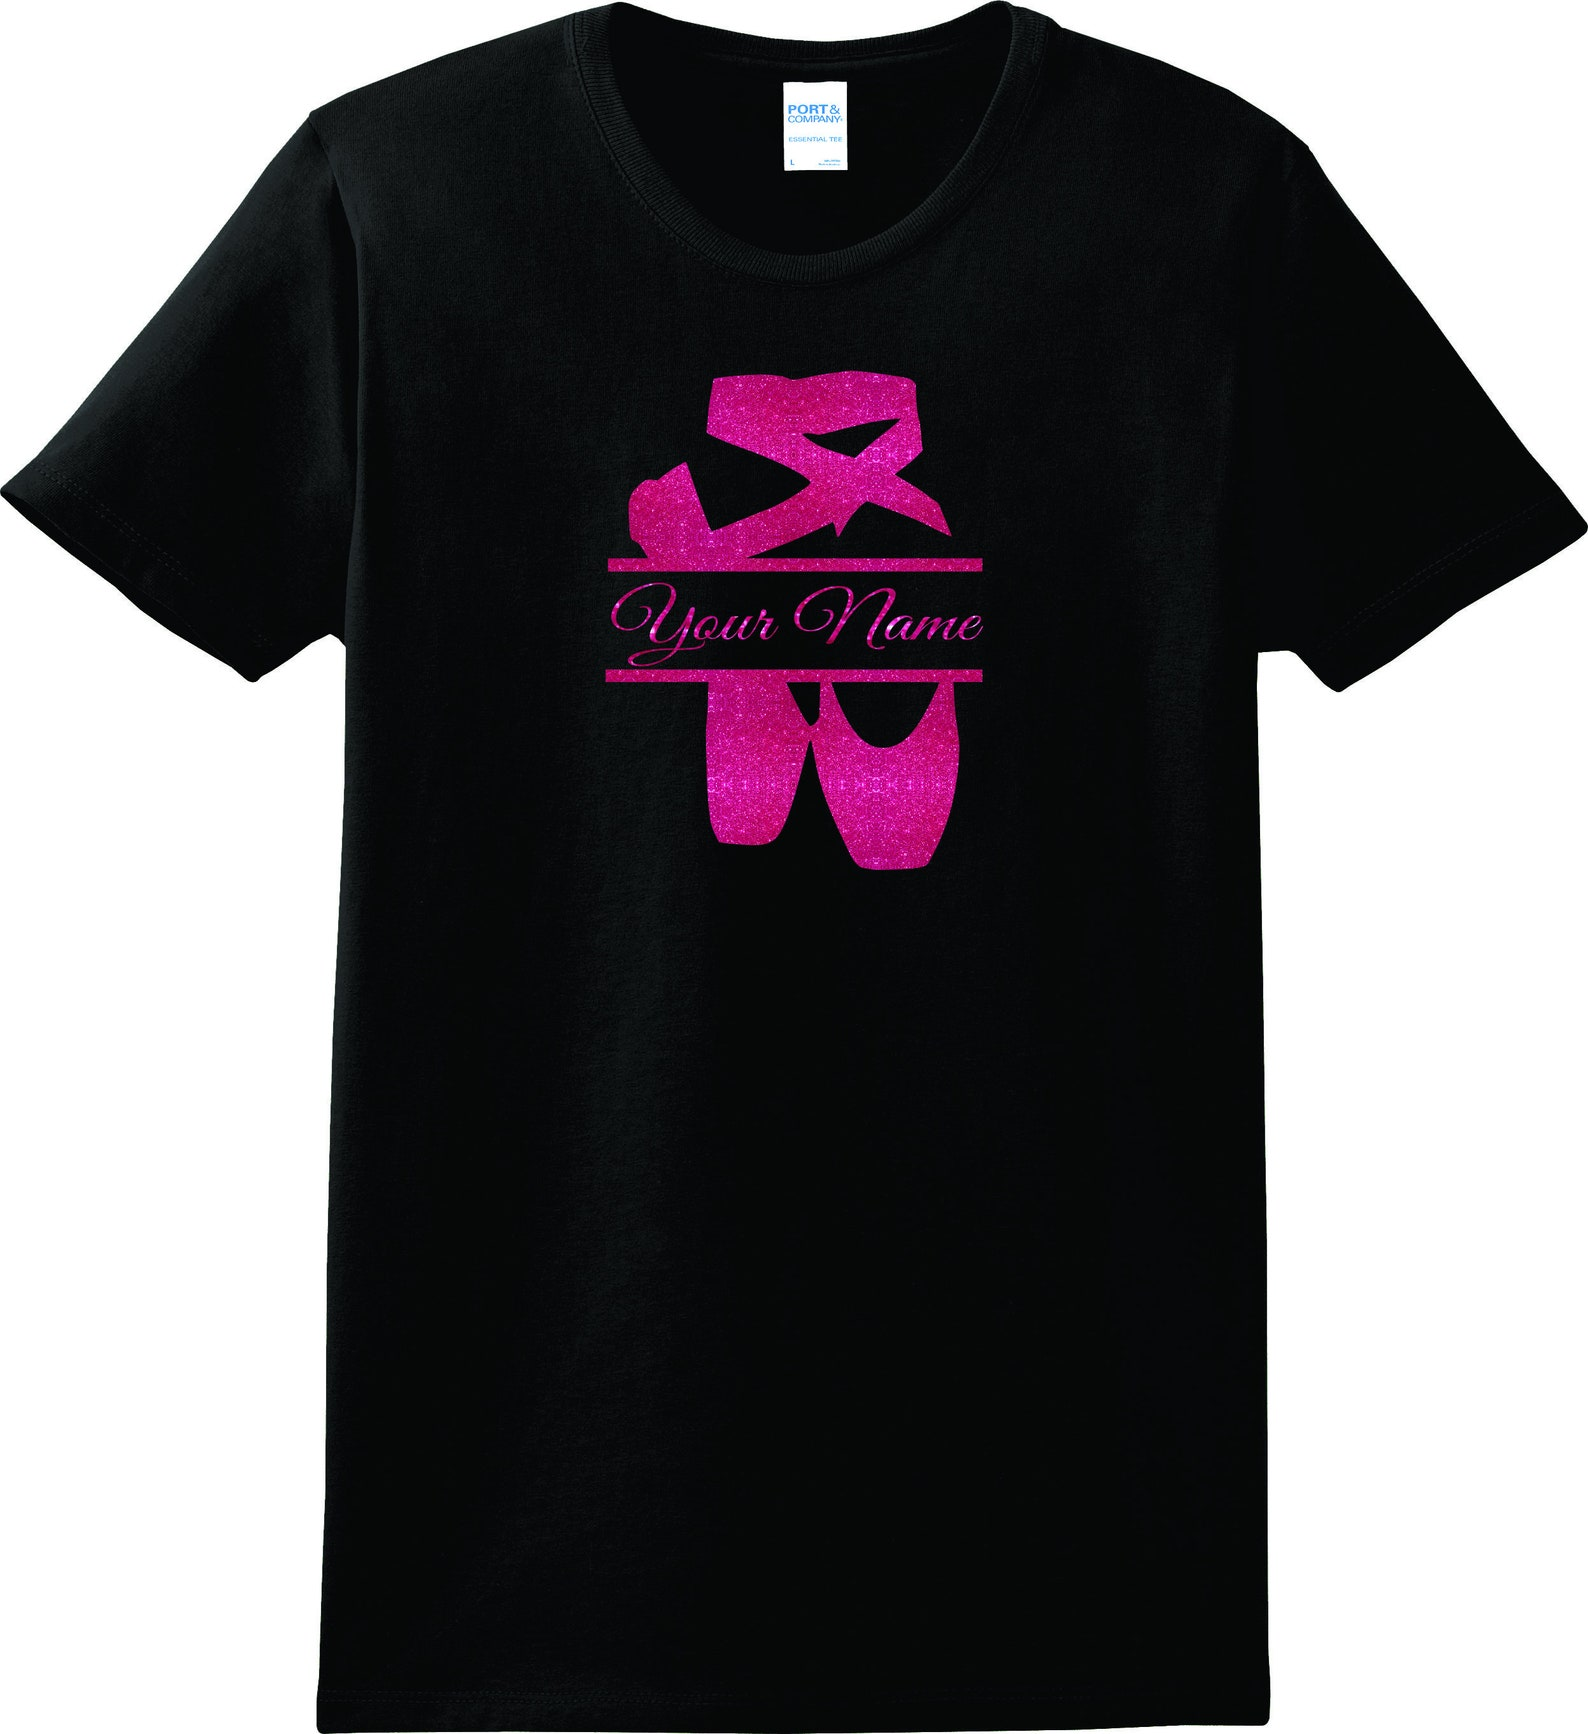 ballet dance shirt personalize with name/school or team t -shirt, personalize the colors, all sizes infant 6 mos to adult 6-xl